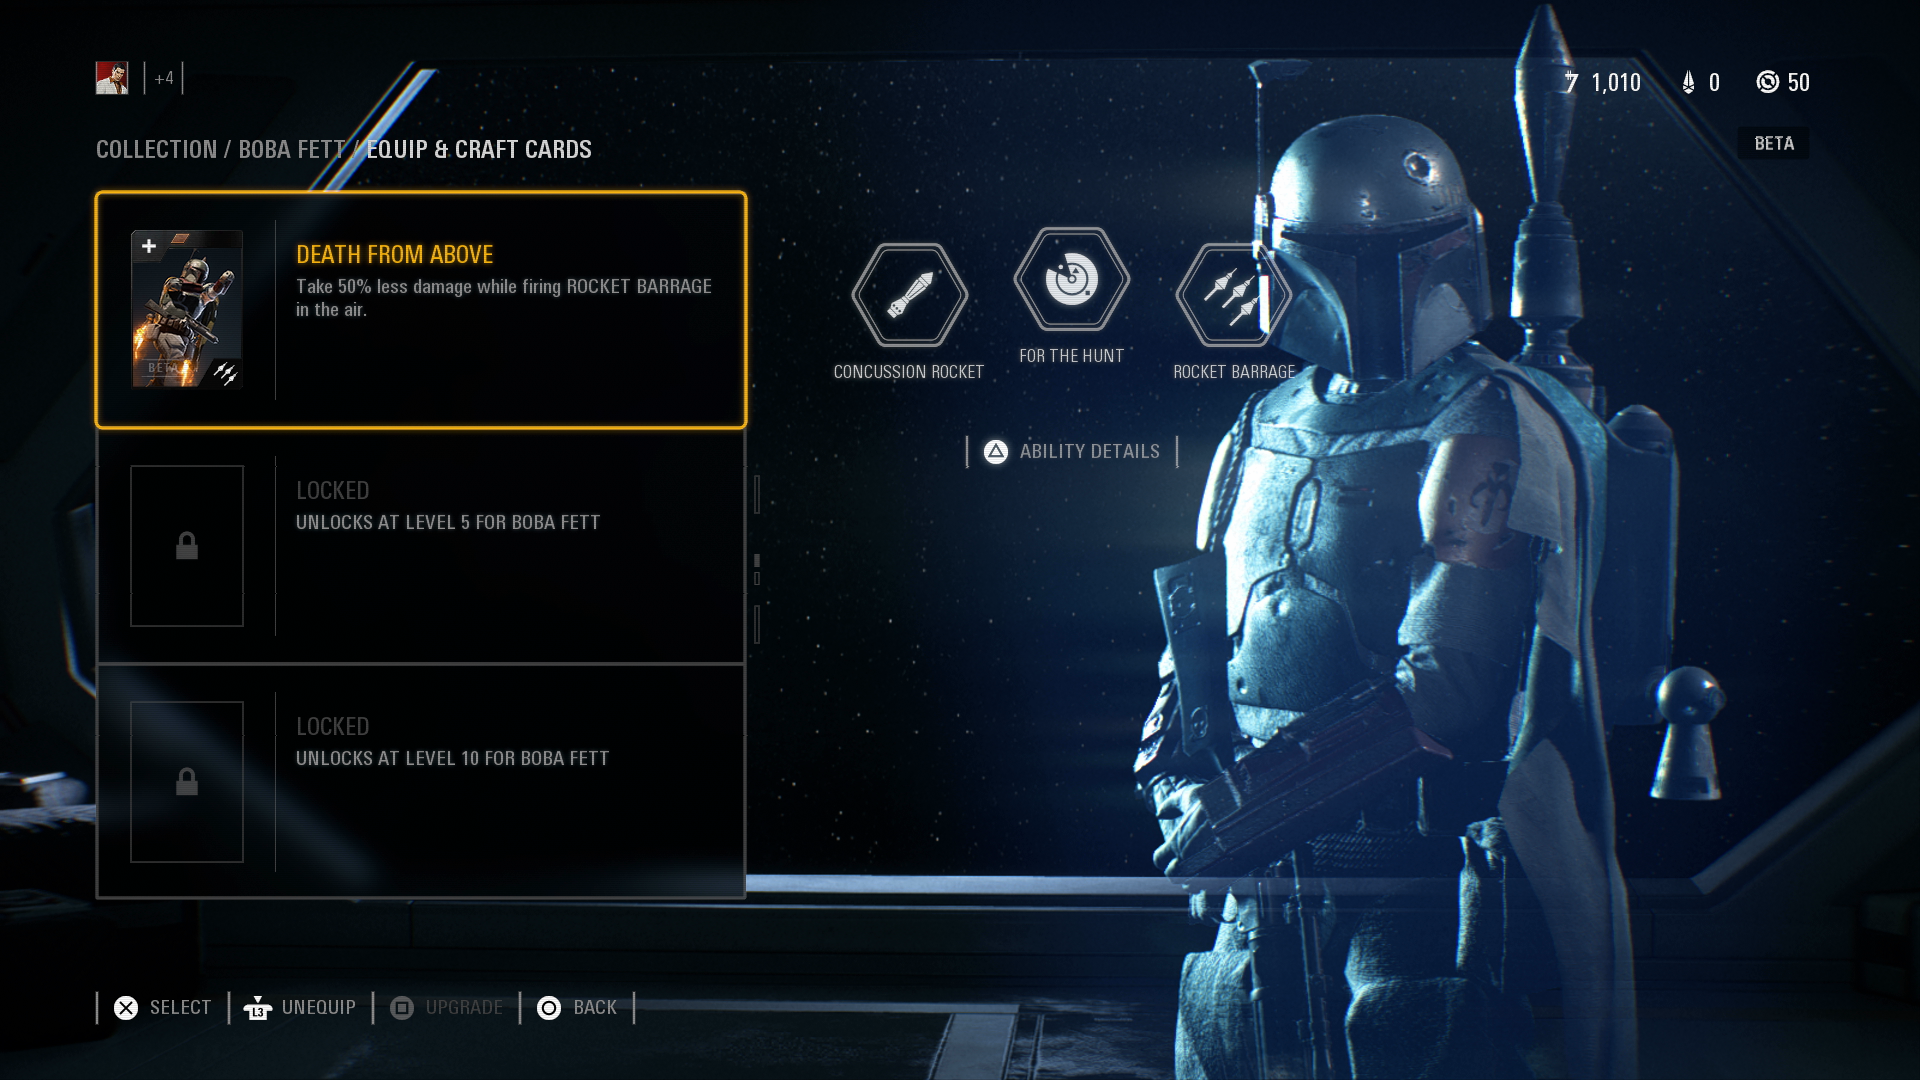 You won't have to pay to win in 'Battlefront II' after all